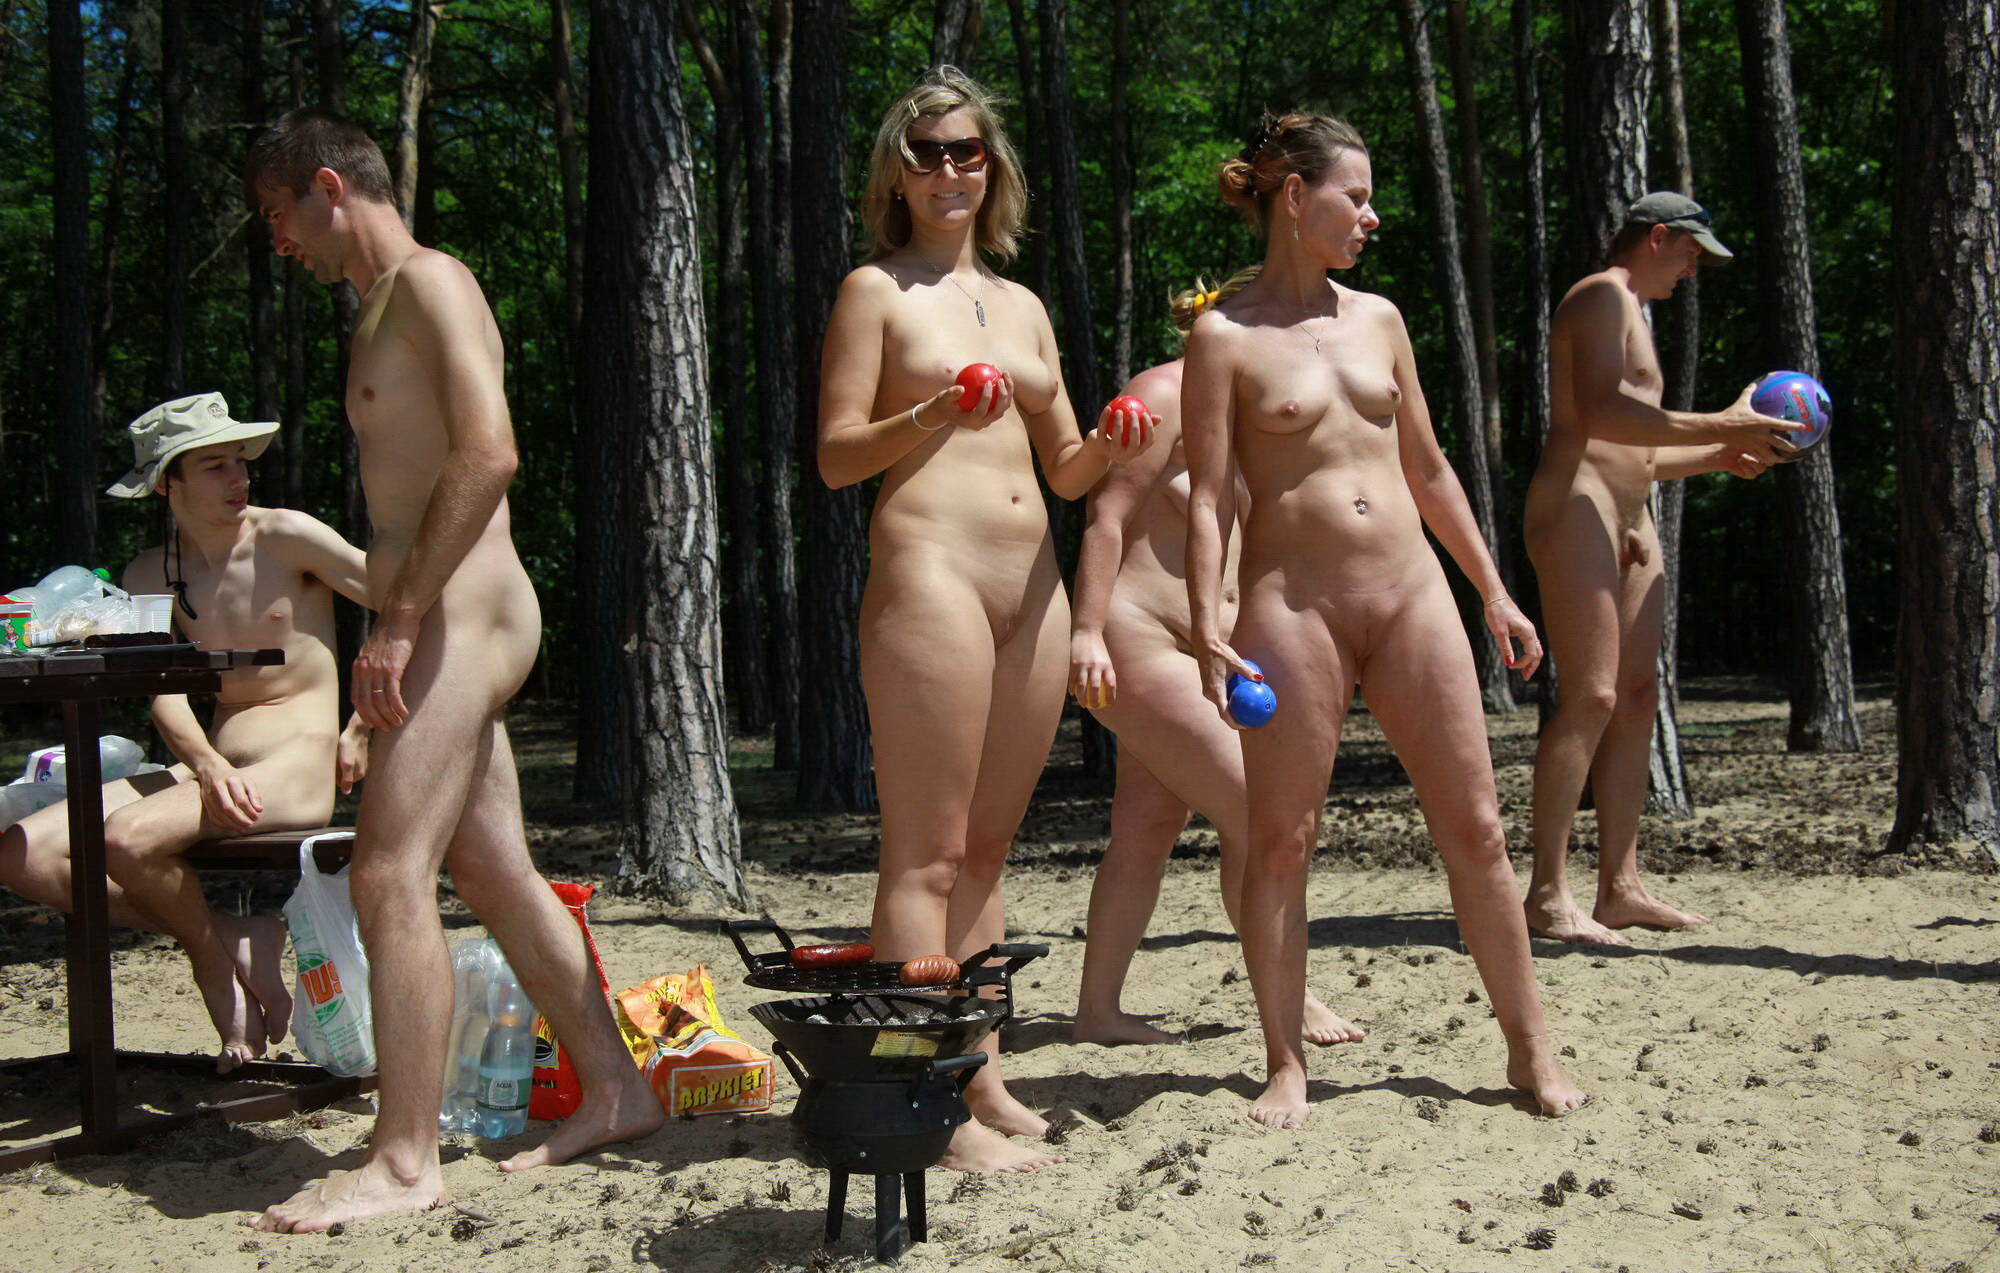 https://voyeurpapa.com/wp-content/uploads/2016/12/Nudists-family-nude-beach-24.jpg